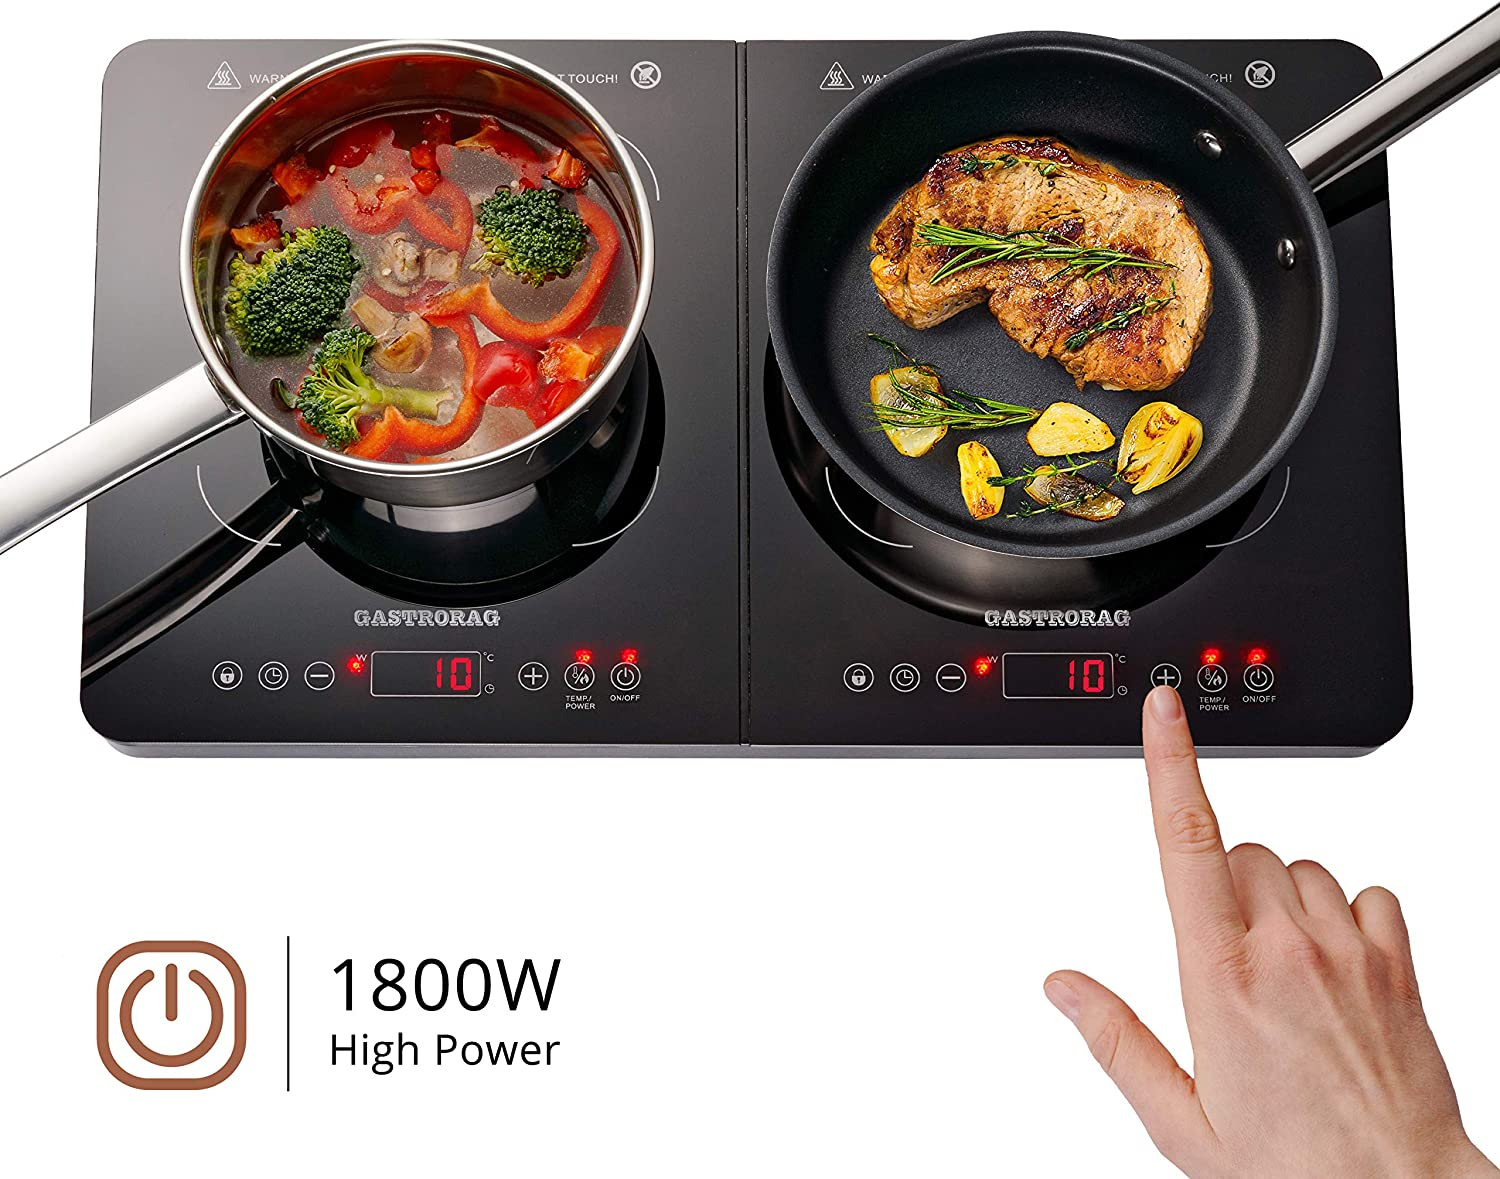 Gastrorag 1800W Portable Double Induction Ceramic Cooktop – Lightweight, Sensor Touch, 10 Temperature Power Settings, 180 Min Timer, Energy-saving Countertop Double Burner Stove, IP-34DOUBLE